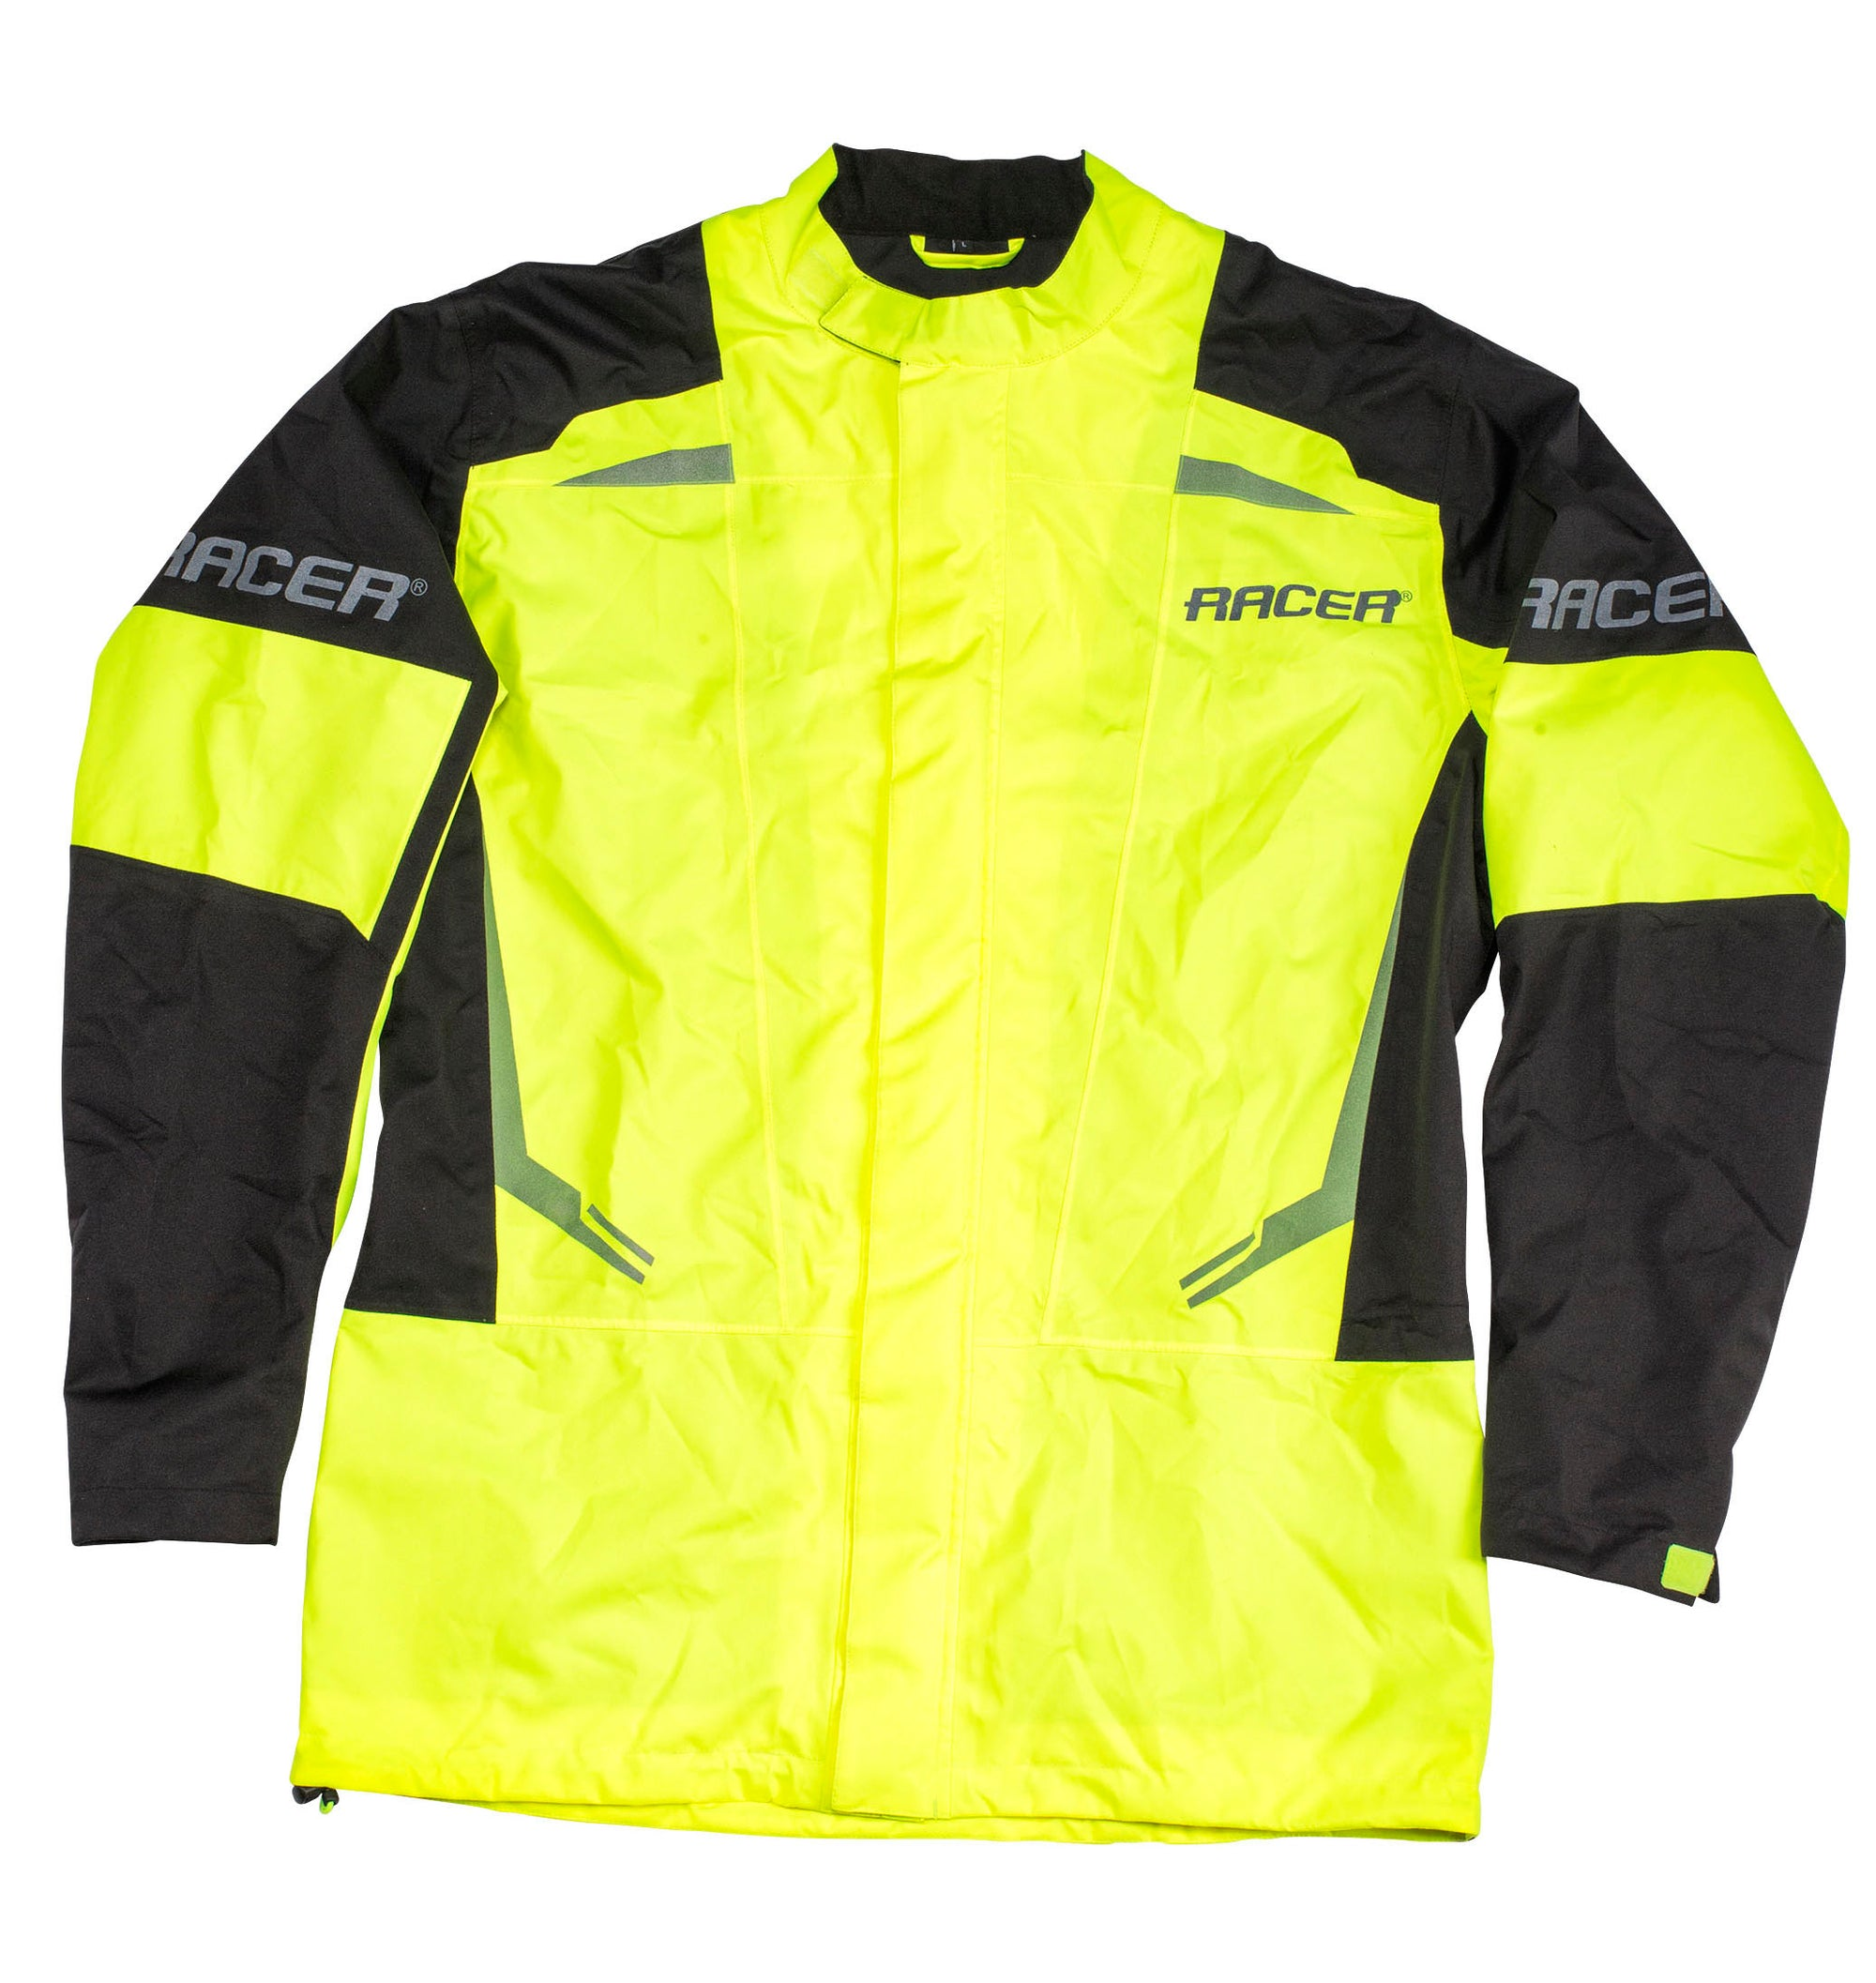 Racer Flex Rain Jacket, Waterproofs, Racer - Averys Motorcycles